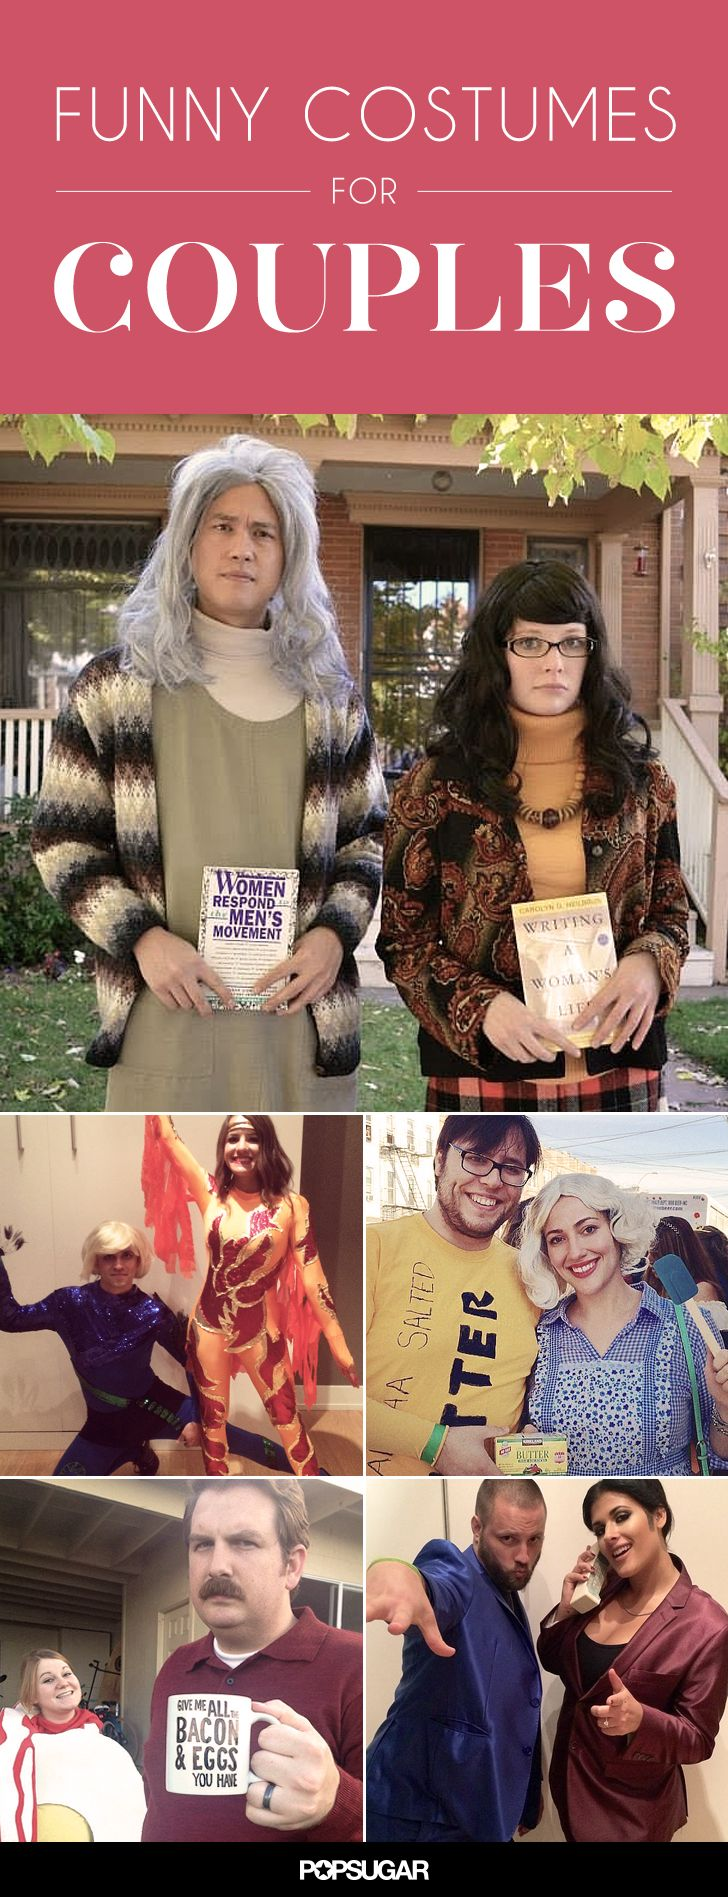 Are you and your boyfriend the couple that is always making your other friends laugh? If you are, it should be easy to keep the chuckles going with these funny costumes meant for the pair with a good sense of humor. Whether you're embodying Saturday Night Live characters or Will Ferrell movies, these costume ideas will be winning.